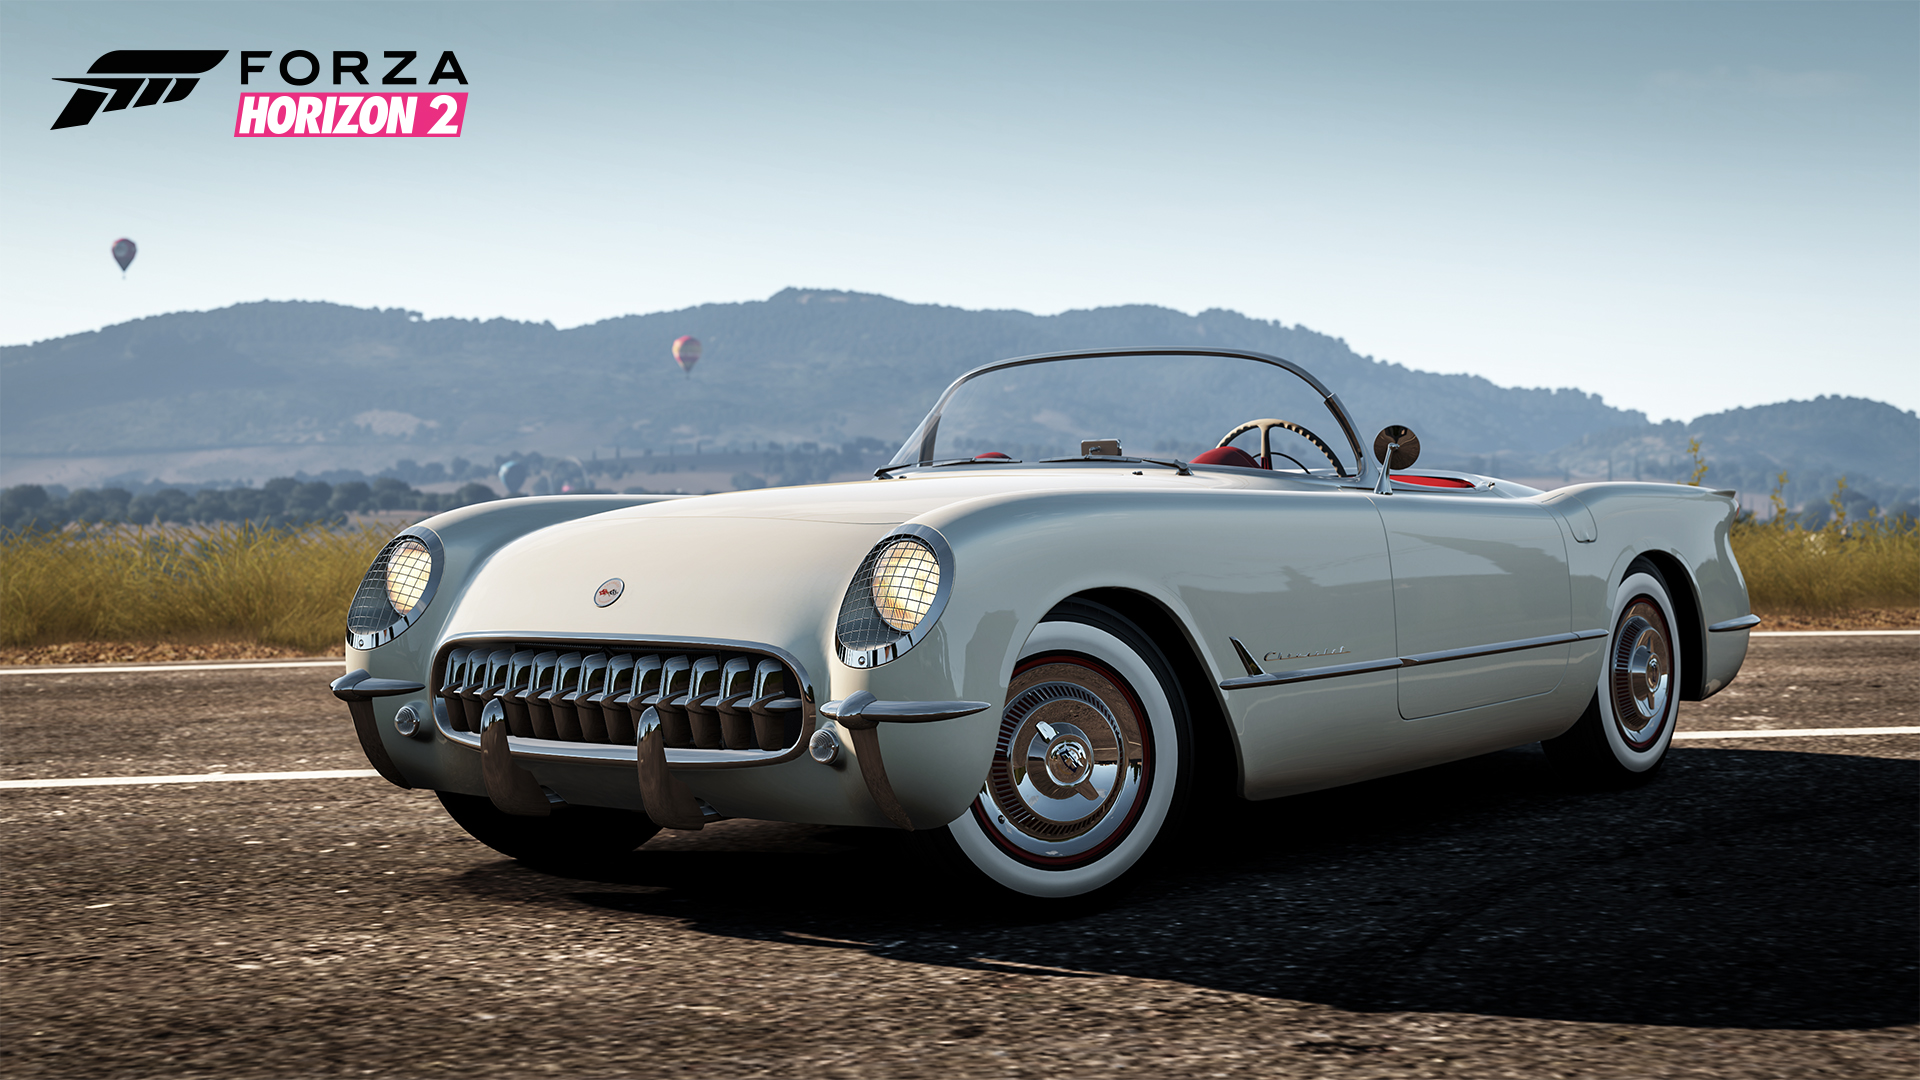 Forza Horizon 2 screenshot 3153